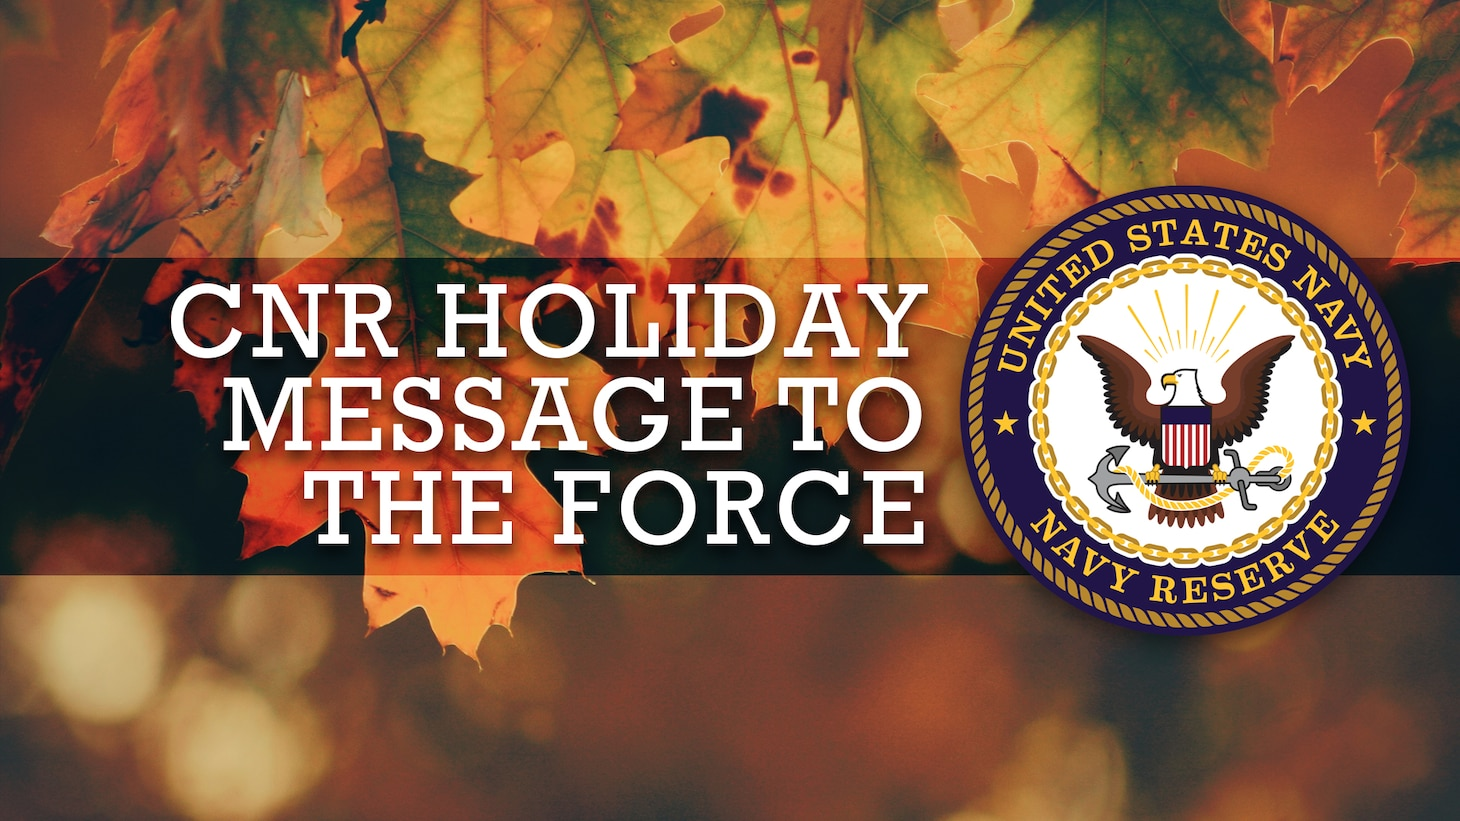 CNR Holiday Message To The Force